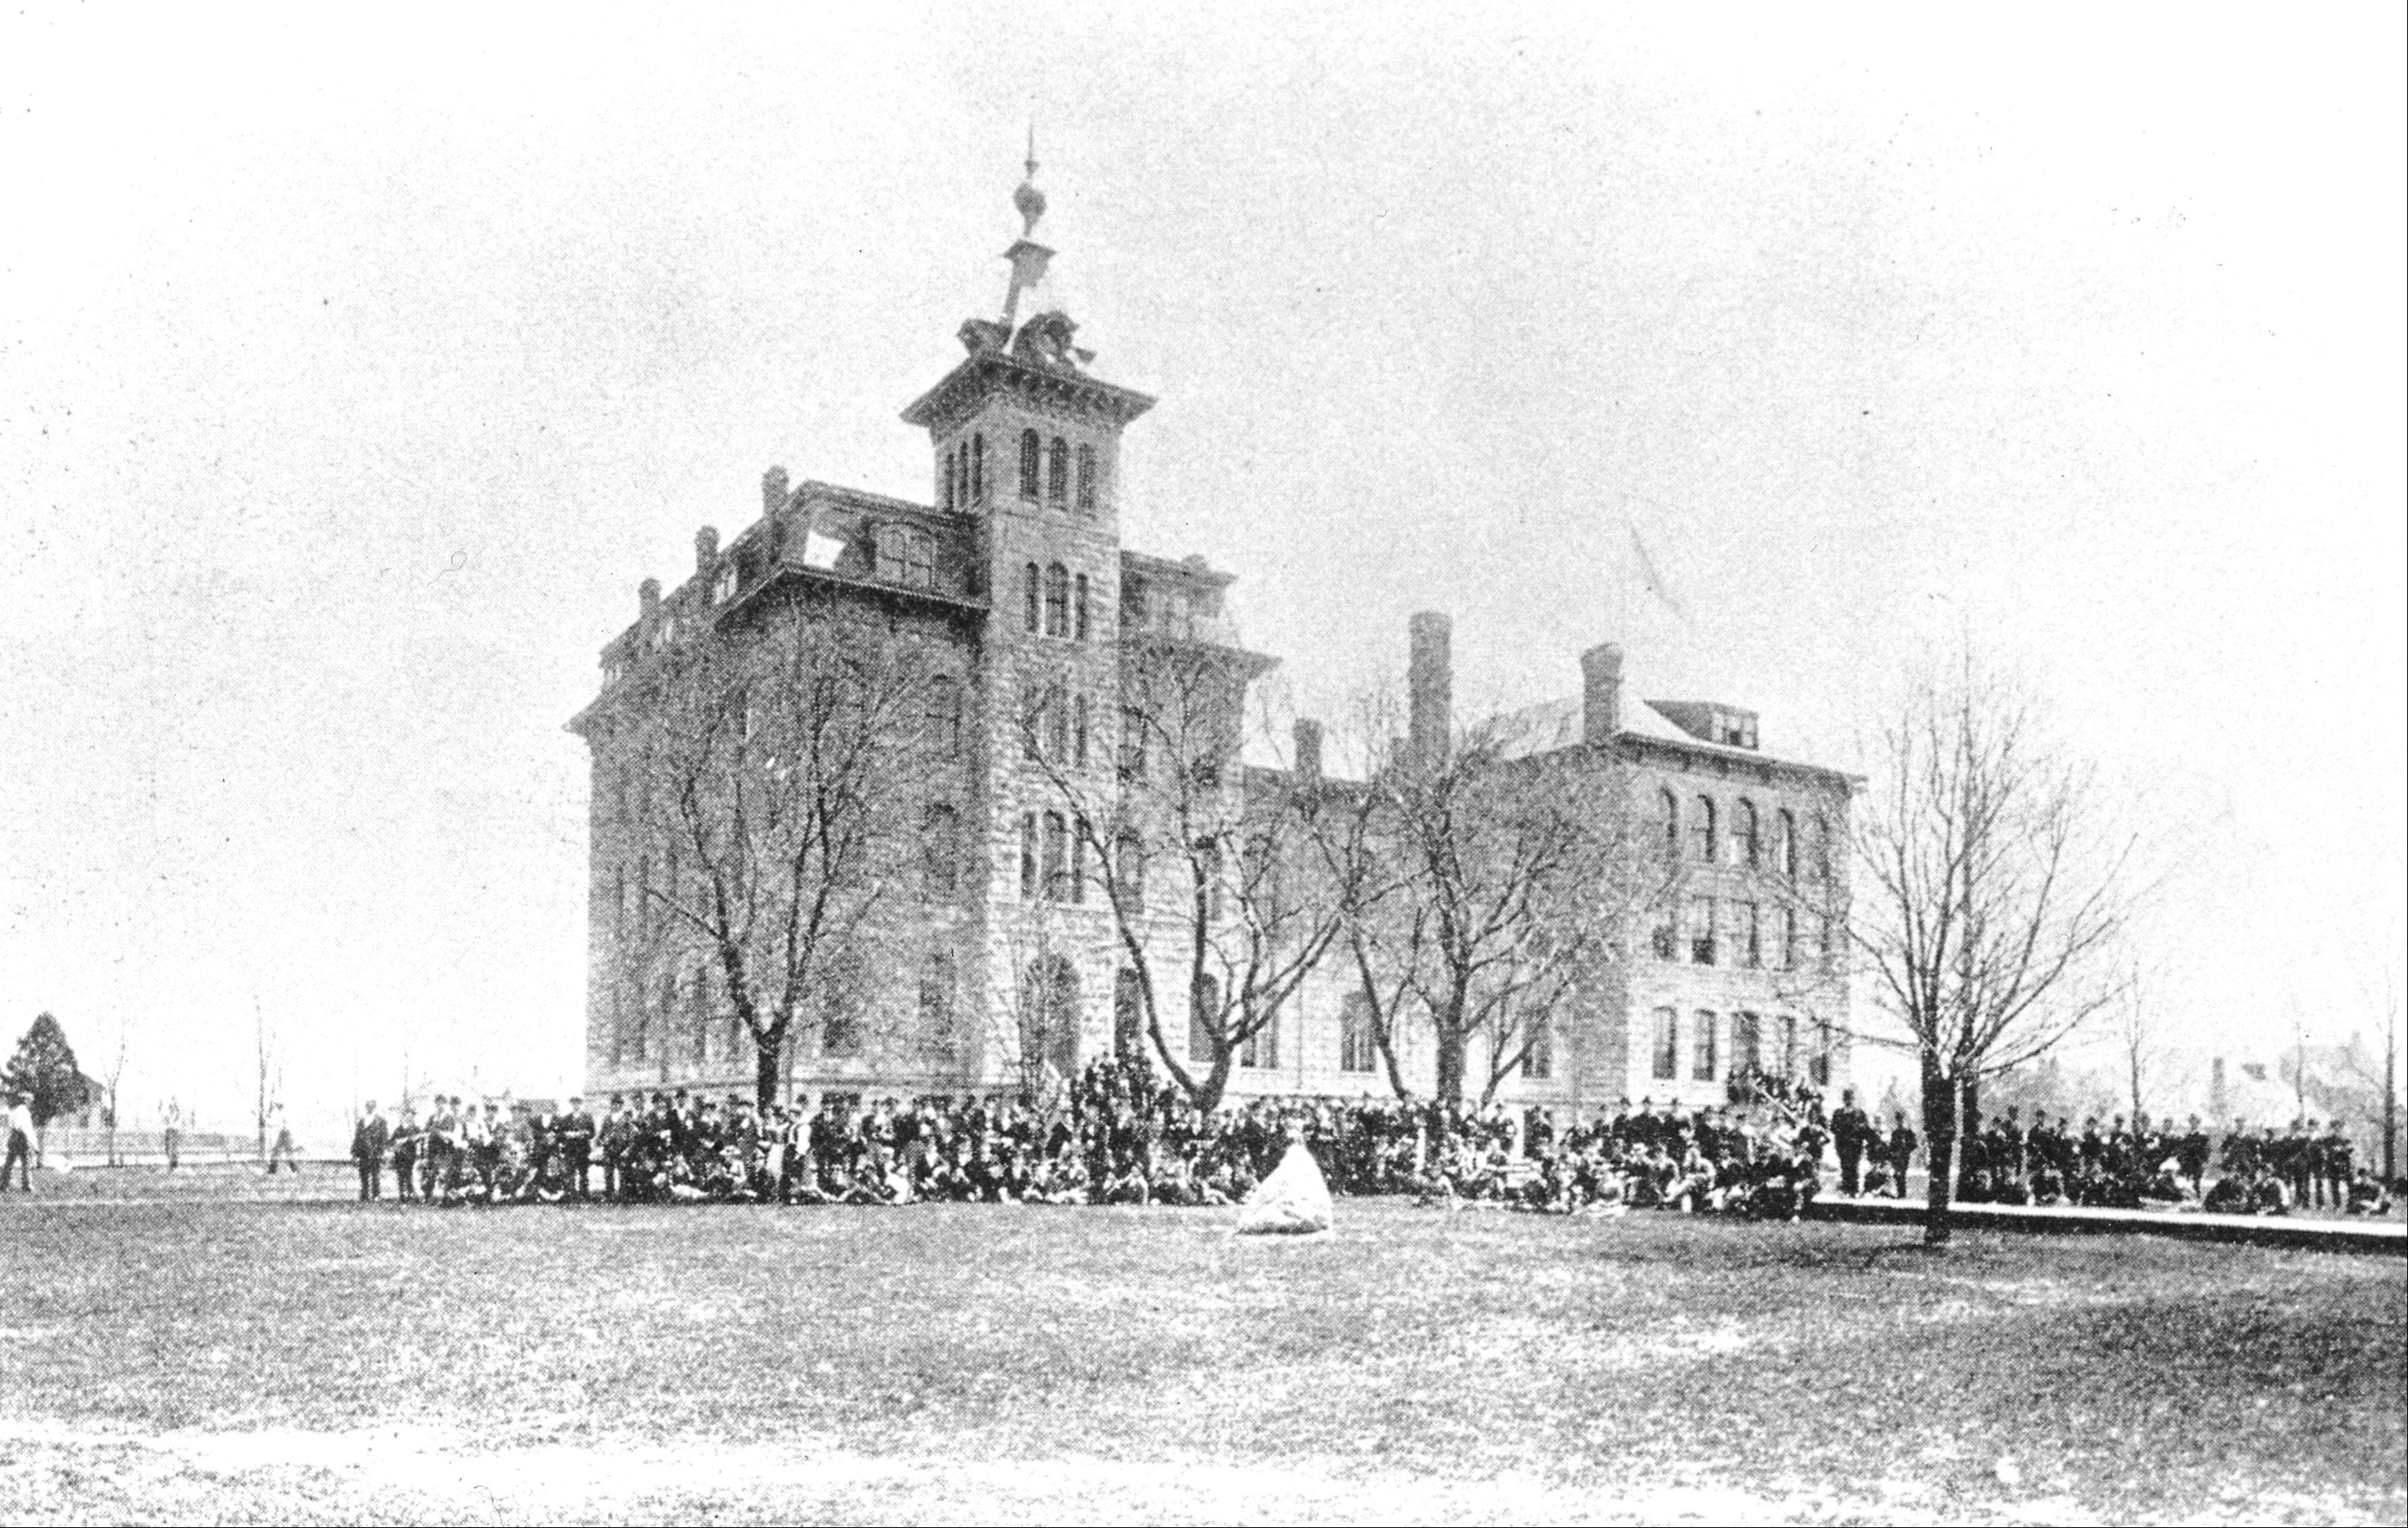 The south tower of Old Main was dedicated on Field Day, May 18, 1891.